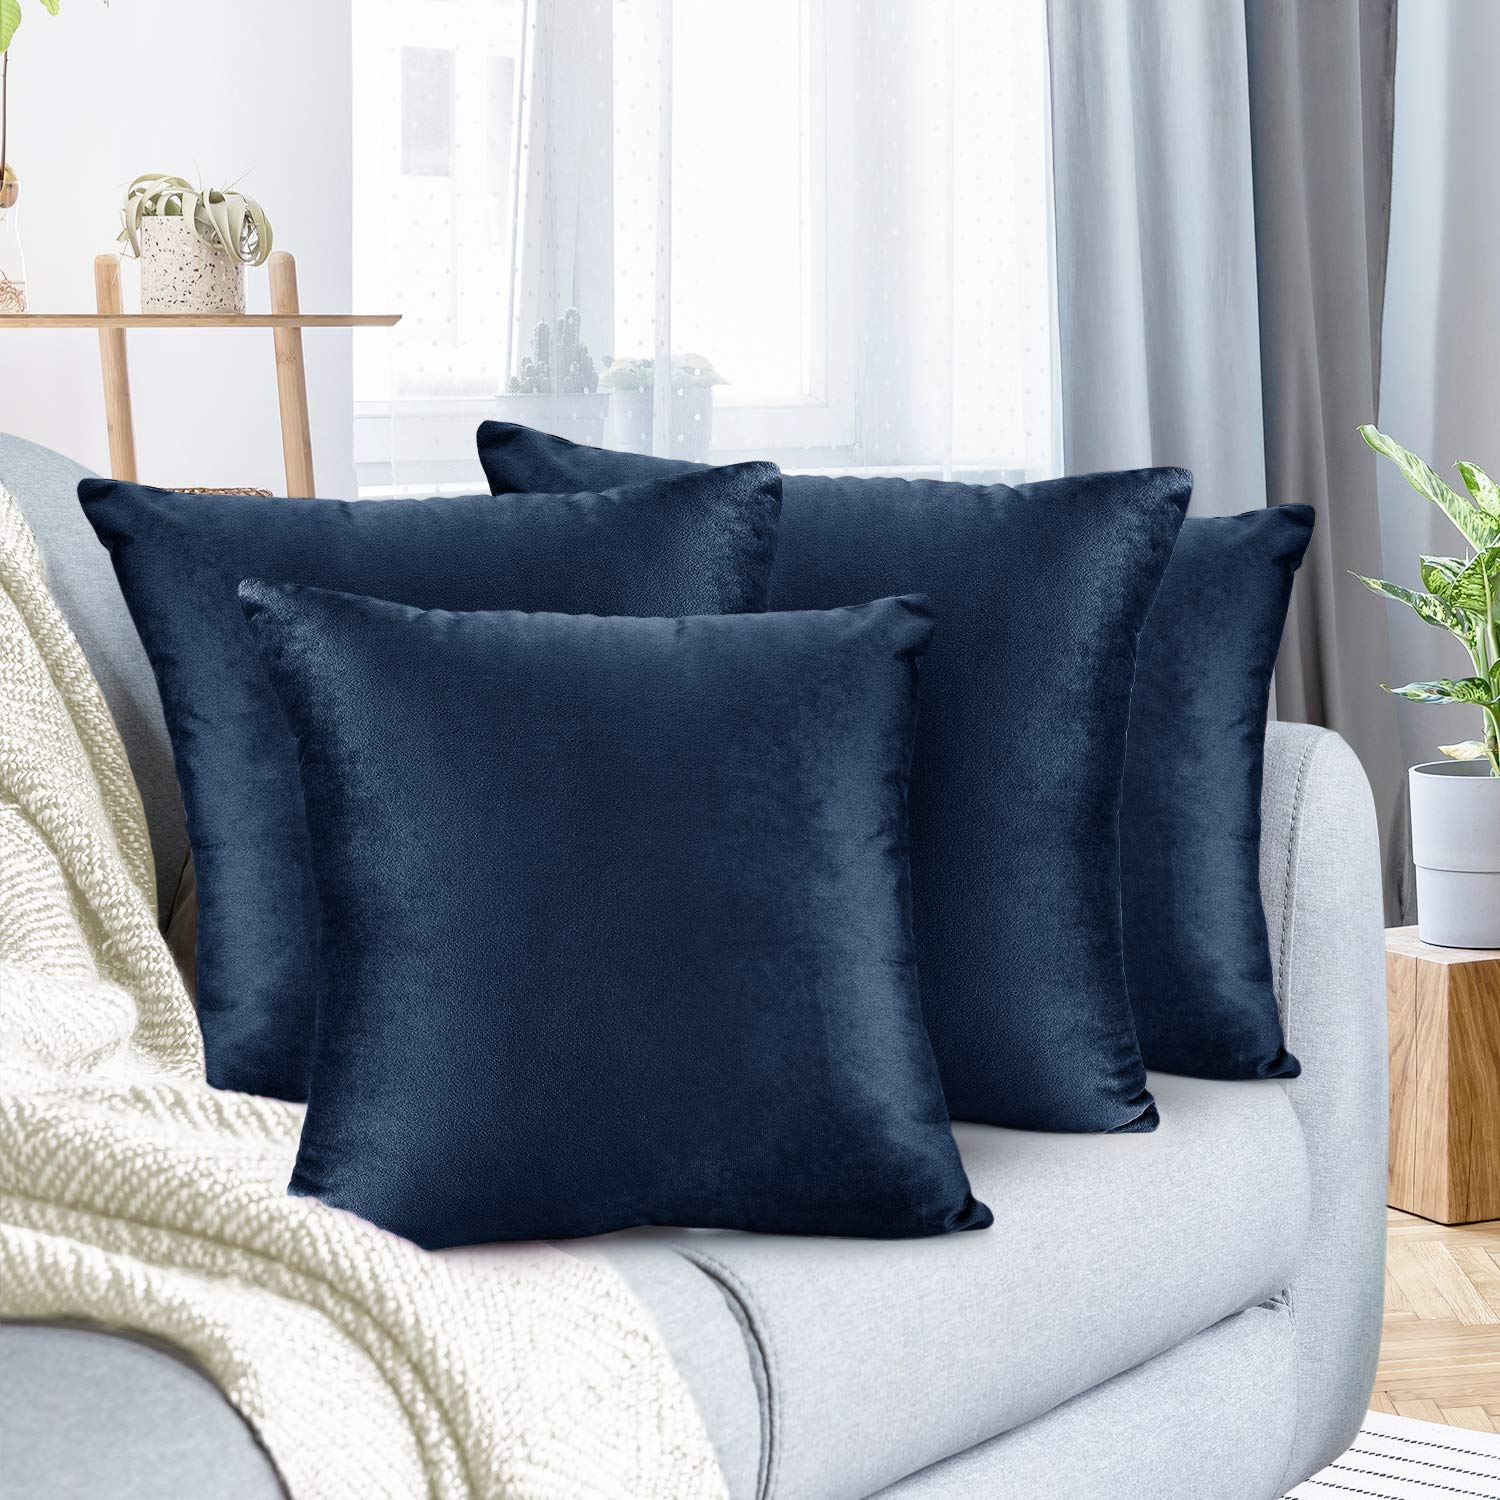 """Nestl Bedding Throw Pillow Cover 18"""" x 18"""" Soft Square Decorative Throw Pillow Covers Cozy Velvet Cushion Case for Sofa Couch Bedroom, Set of 4, Navy Blue"""